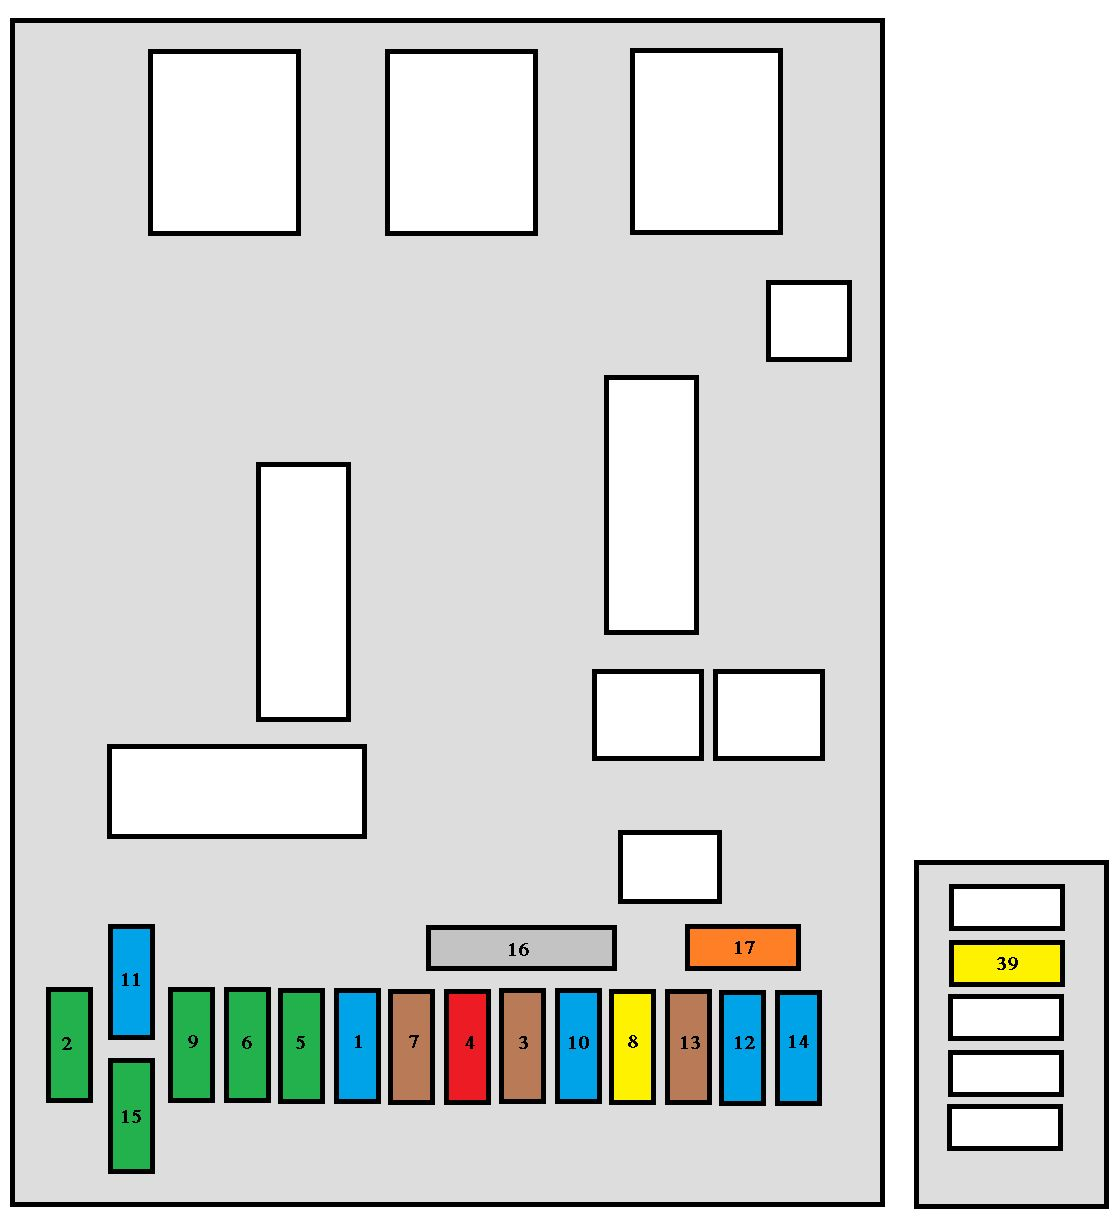 Peugeot 307 2005 2008 fuse box diagram auto genius peugeot 307 2005 2008 fuse box diagram swarovskicordoba